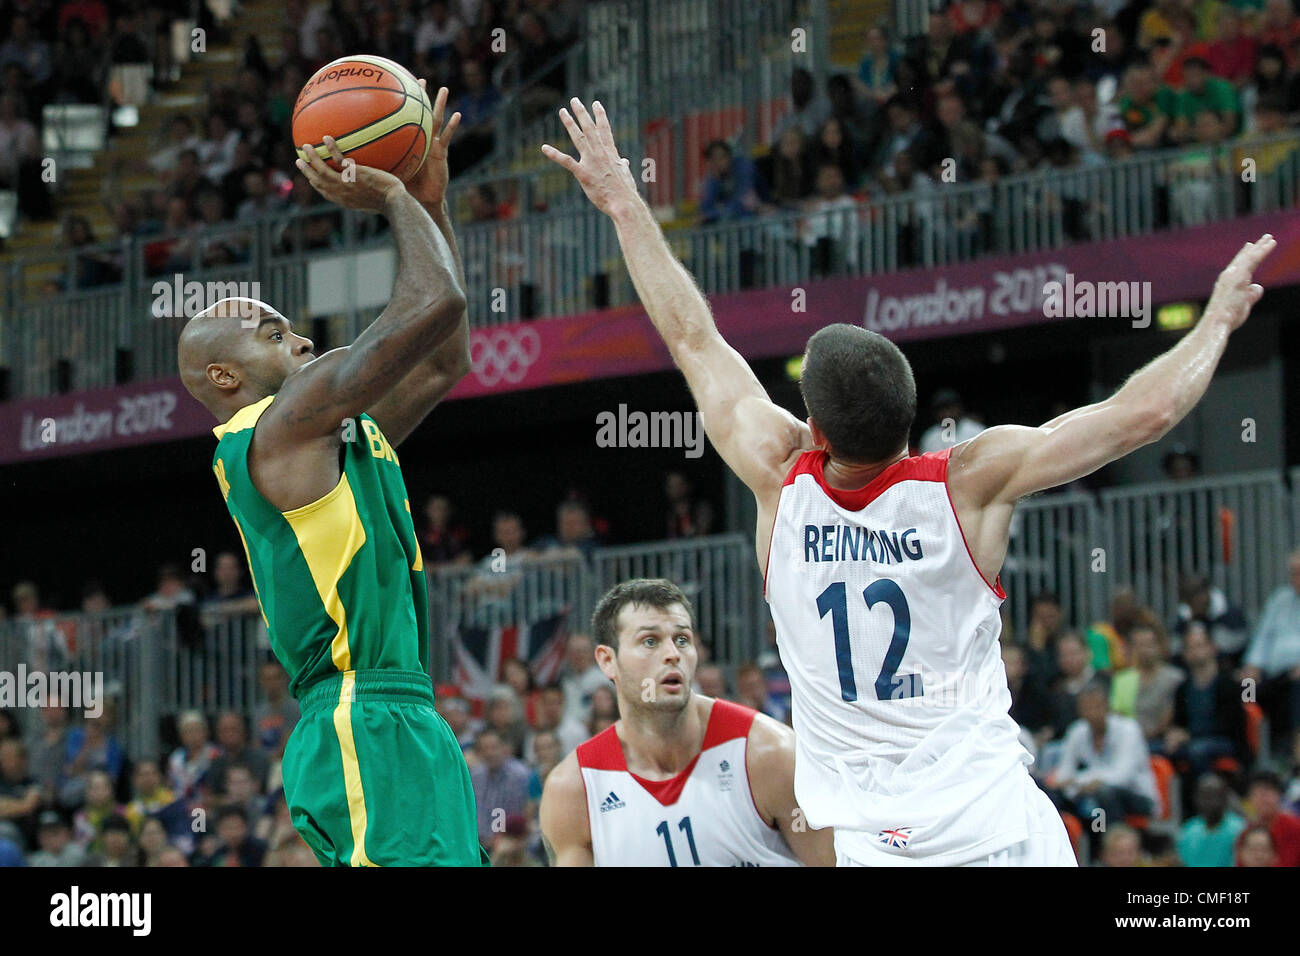 31.07.2012. London, England. 2012 Olympic  Basketball tournament.  Brazil Larry Taylor takes a jumpshot Great Britain - Stock Image